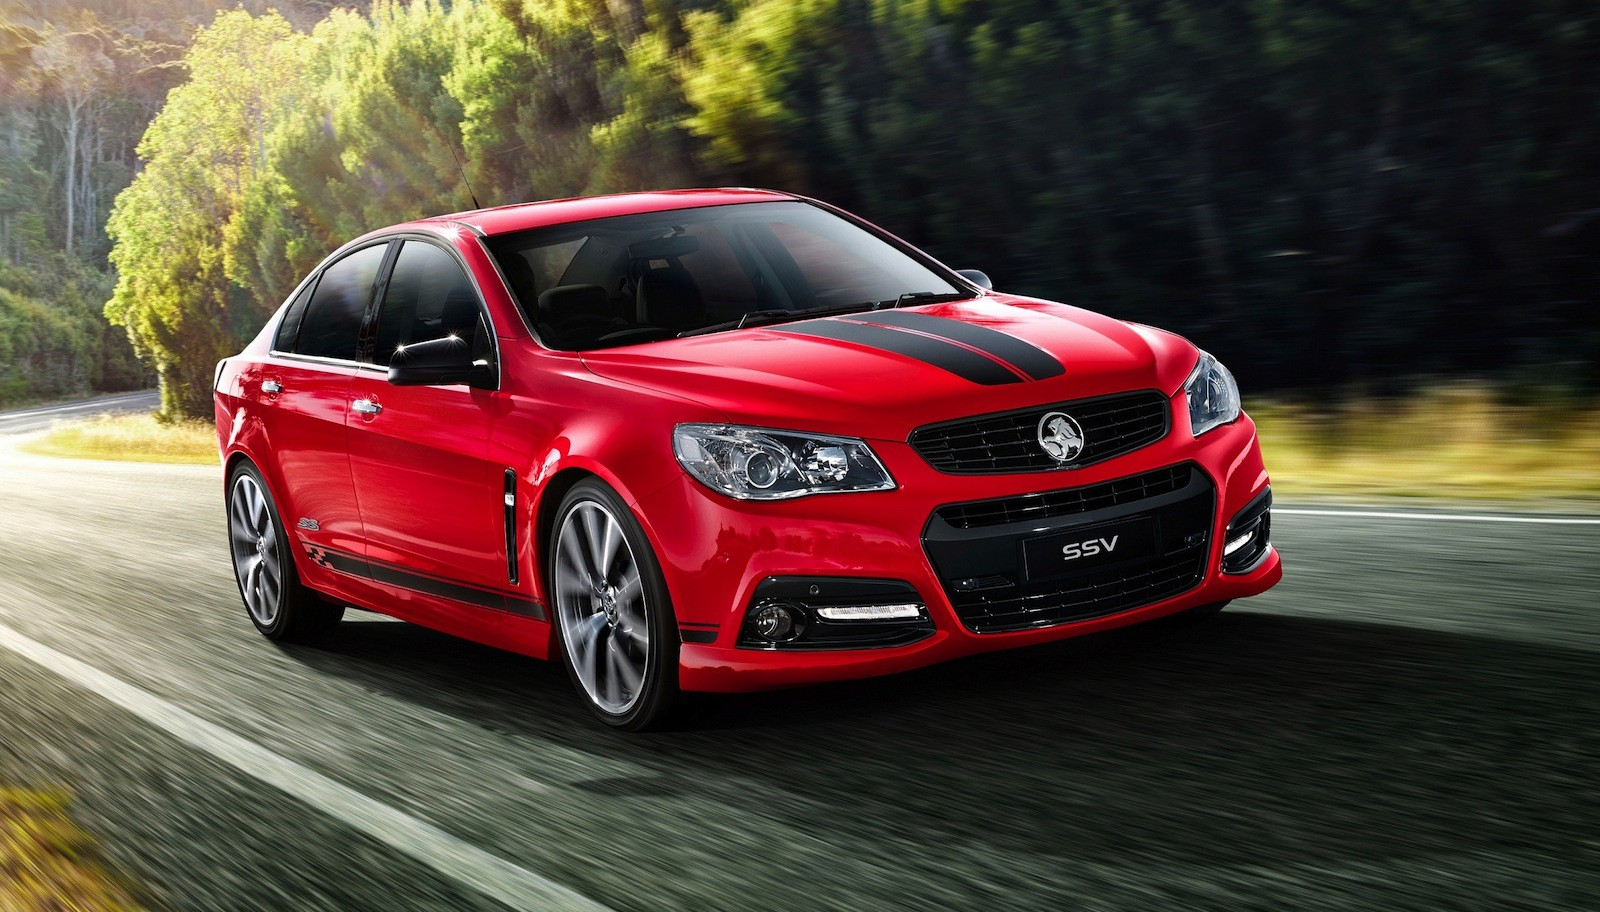 Holden Vf Commodore Optional Design Packs Added Photos